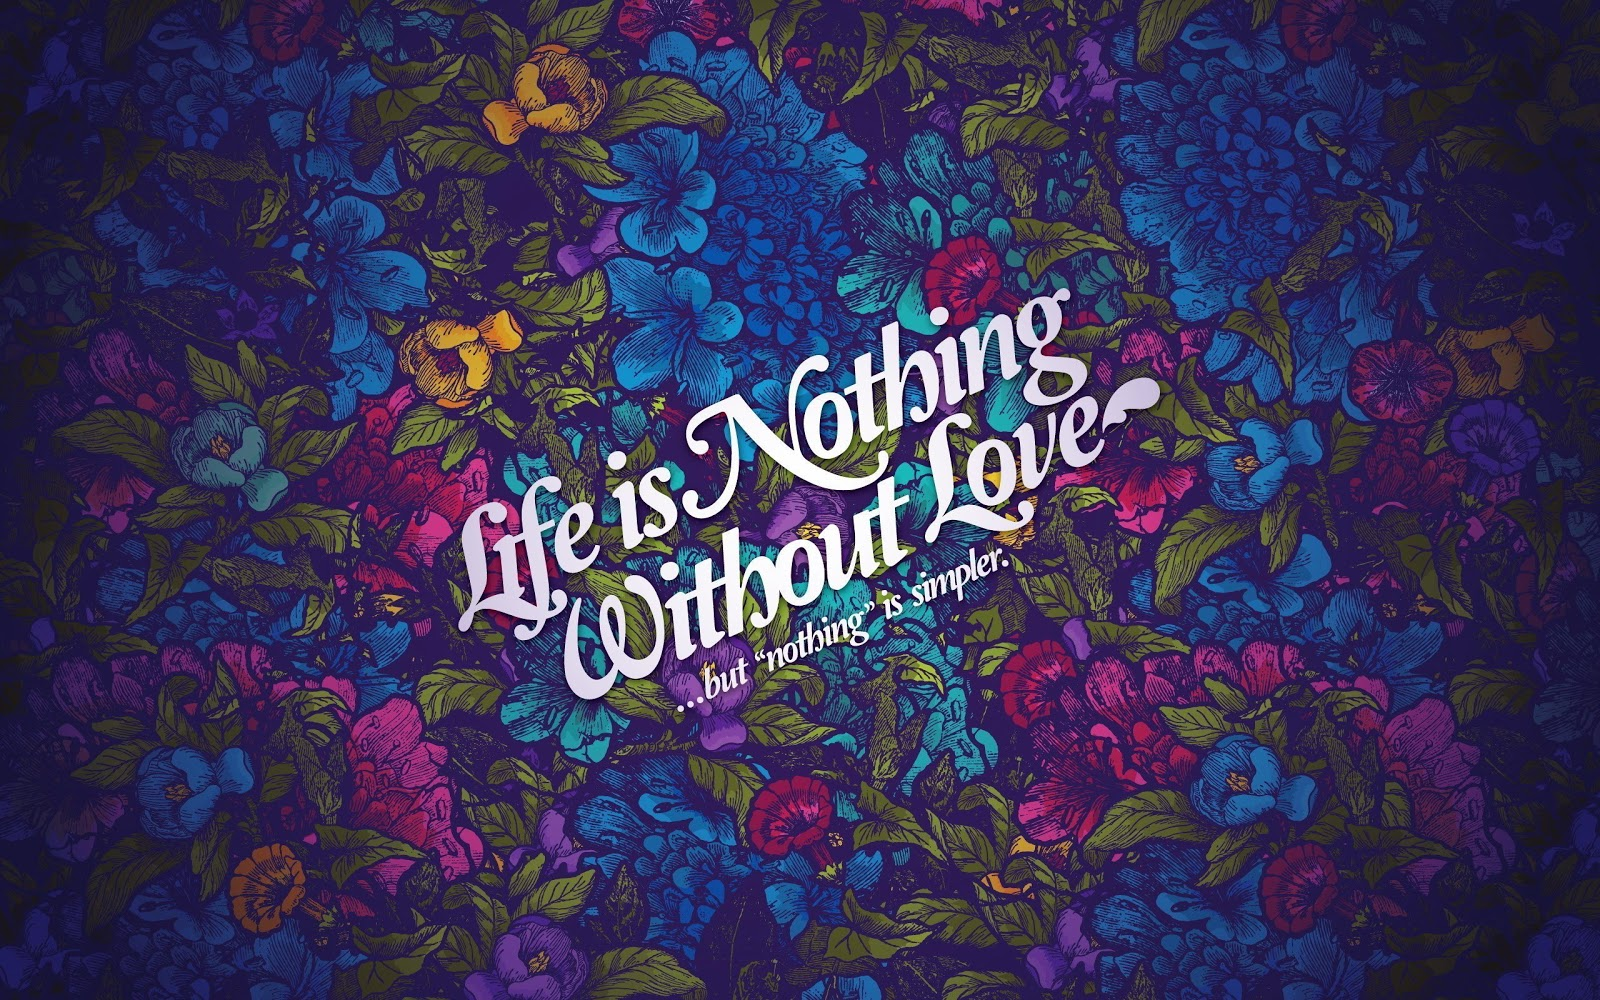 Love Life Wallpaper Hd : life quotes tumblr hd wallpapers download free life quotes ...